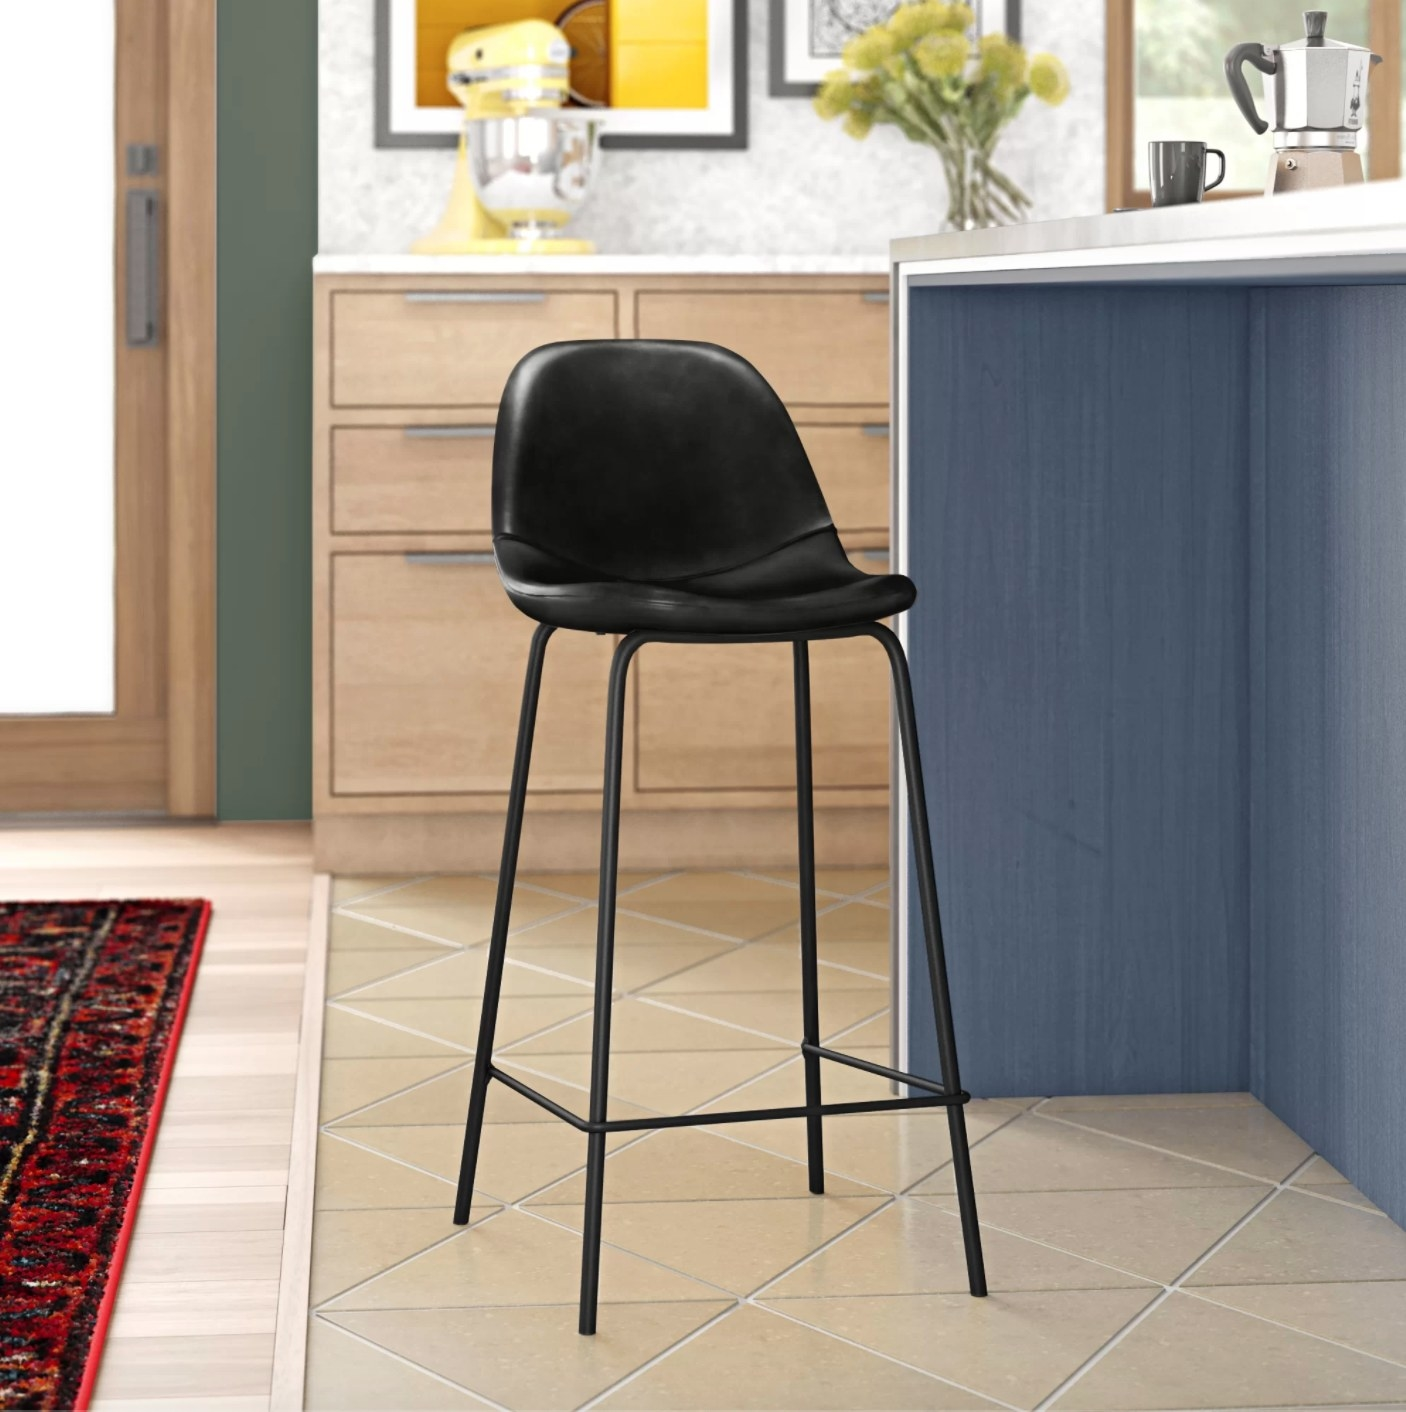 The set of two bar and counter stools in charcoal